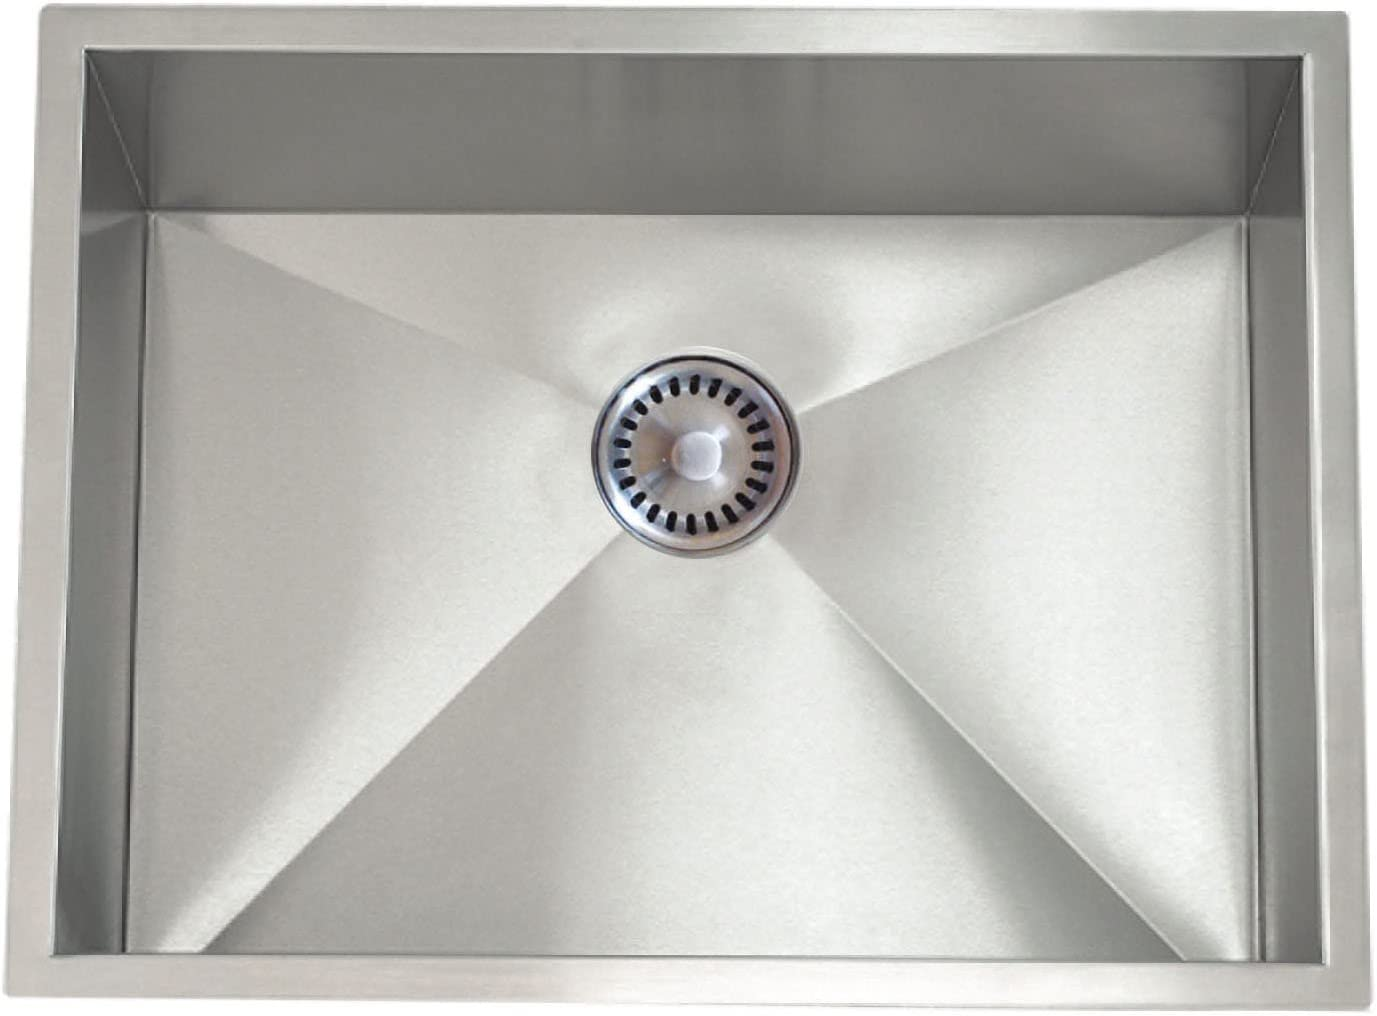 Lenova PC-SS-0Ri-S27 PermaClean 16-Gauge Stainless Steel Single Bowl Under-Mount Kitchen Sink 26-1//2 x 17-1//2-Inch